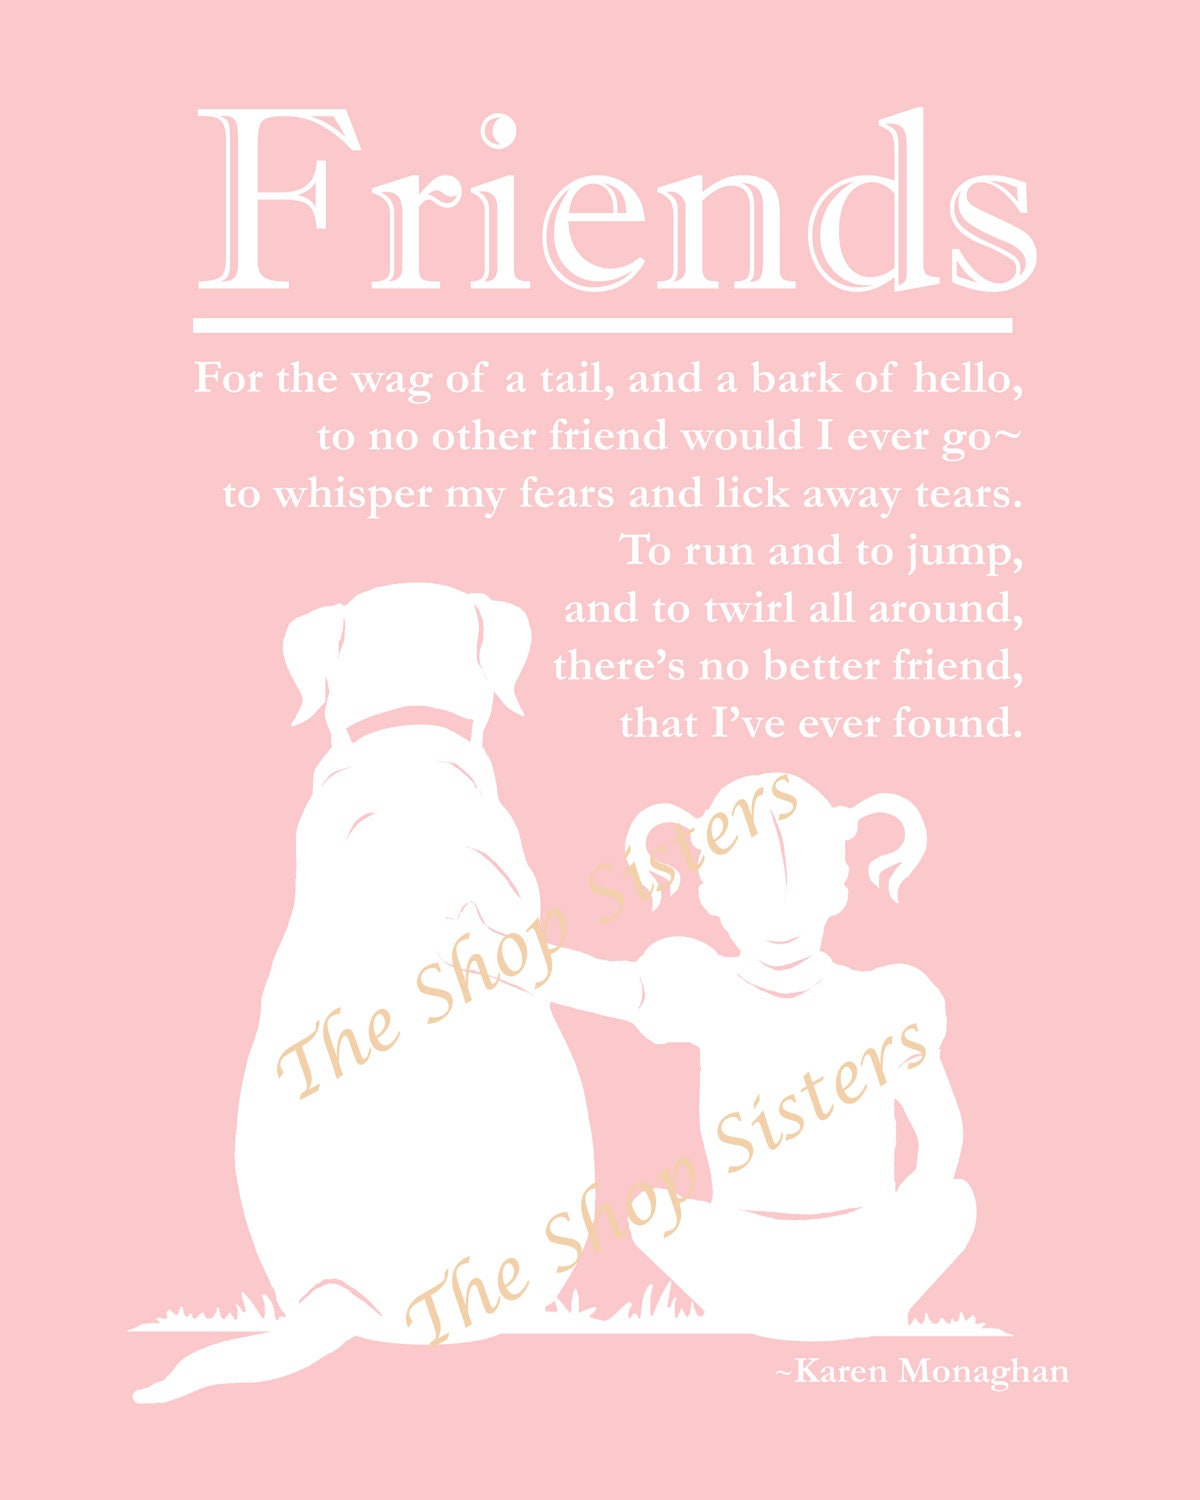 girl and dog poem friend silhouette pink and white 8 x 10